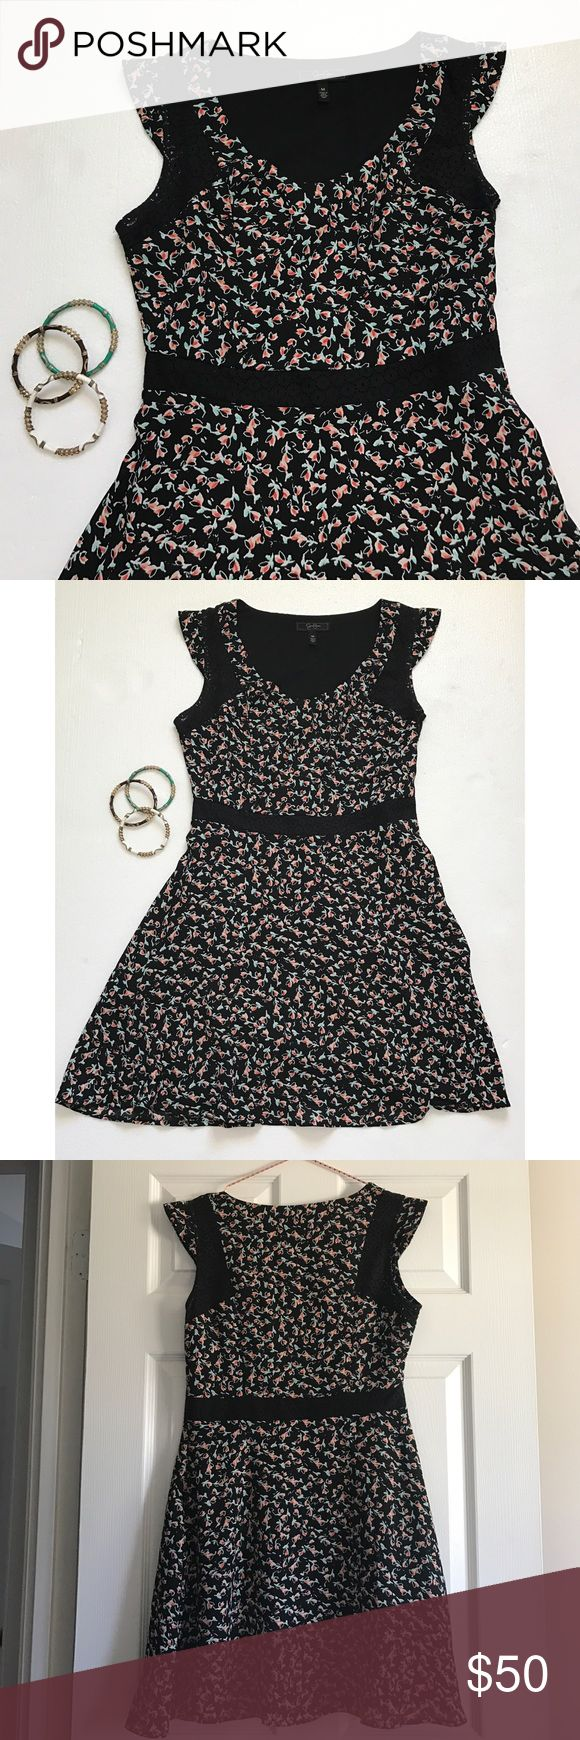 JESSICA SIMPSON Floral Dress with Black Lace Stunning, flirty spring dress from Jessica Simpson. Floral pattern with black lace accents. Delicate cap sleeves. Jessica Simpson Dresses Midi